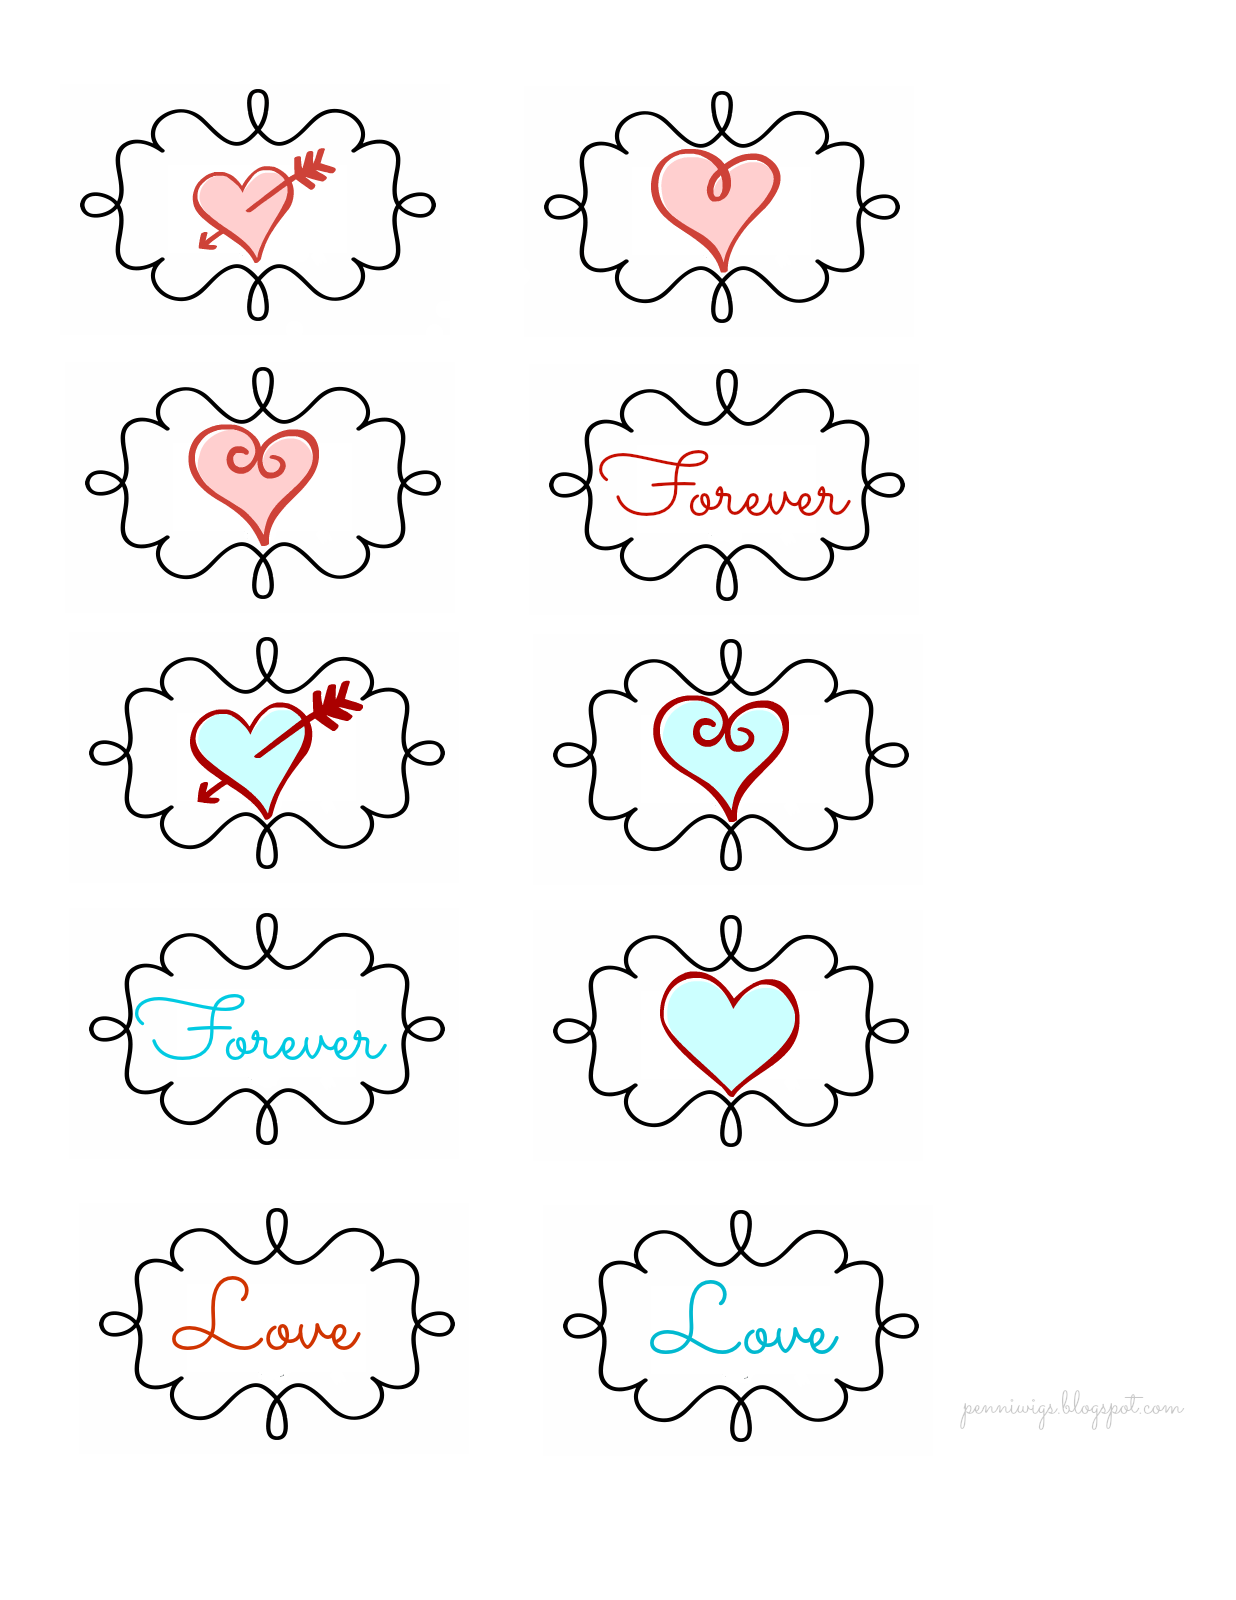 Penniwigs Free Graphics Printables Paper Fun Lore And More Flourish Tags For Valentine S